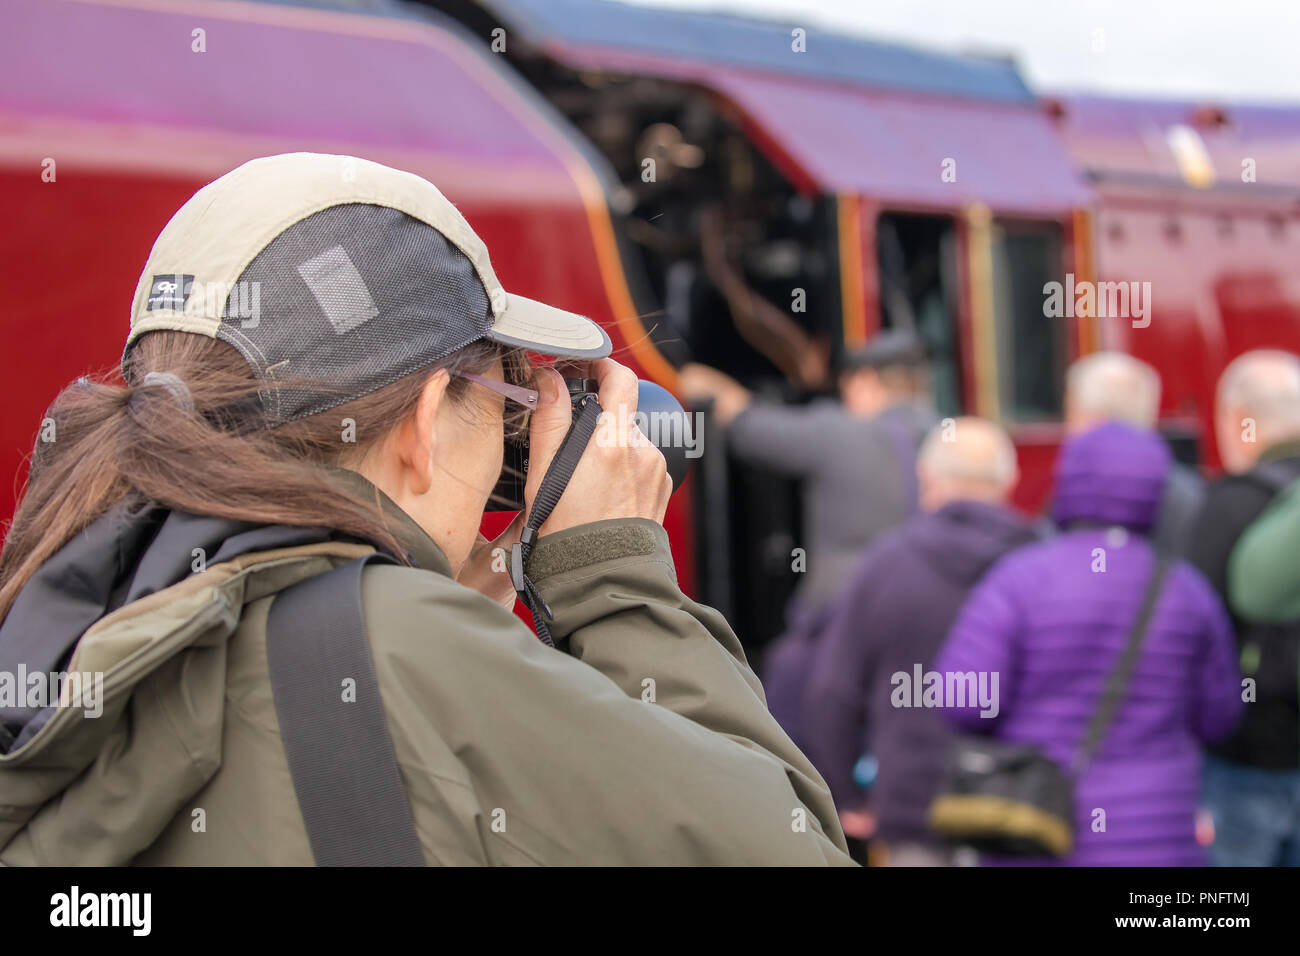 Kidderminster, UK. 21st September, 2018. Day Two of Severn Valley Railway's Autumn Steam Gala sees excited trainspotters flocking to the platform at Kidderminster SVR vintage station. Despite the rain showers, train enthusiasts take every opportunity to get as close as they can to these magnificent UK steam locomotives, particularly the Duchess of Sutherland looking resplendent in her fine crimson livery. A female photographer (rear view) is seen taking photographs of the busy platform scene at this heritage railway. Credit: Lee Hudson/Alamy Live News Stock Photo